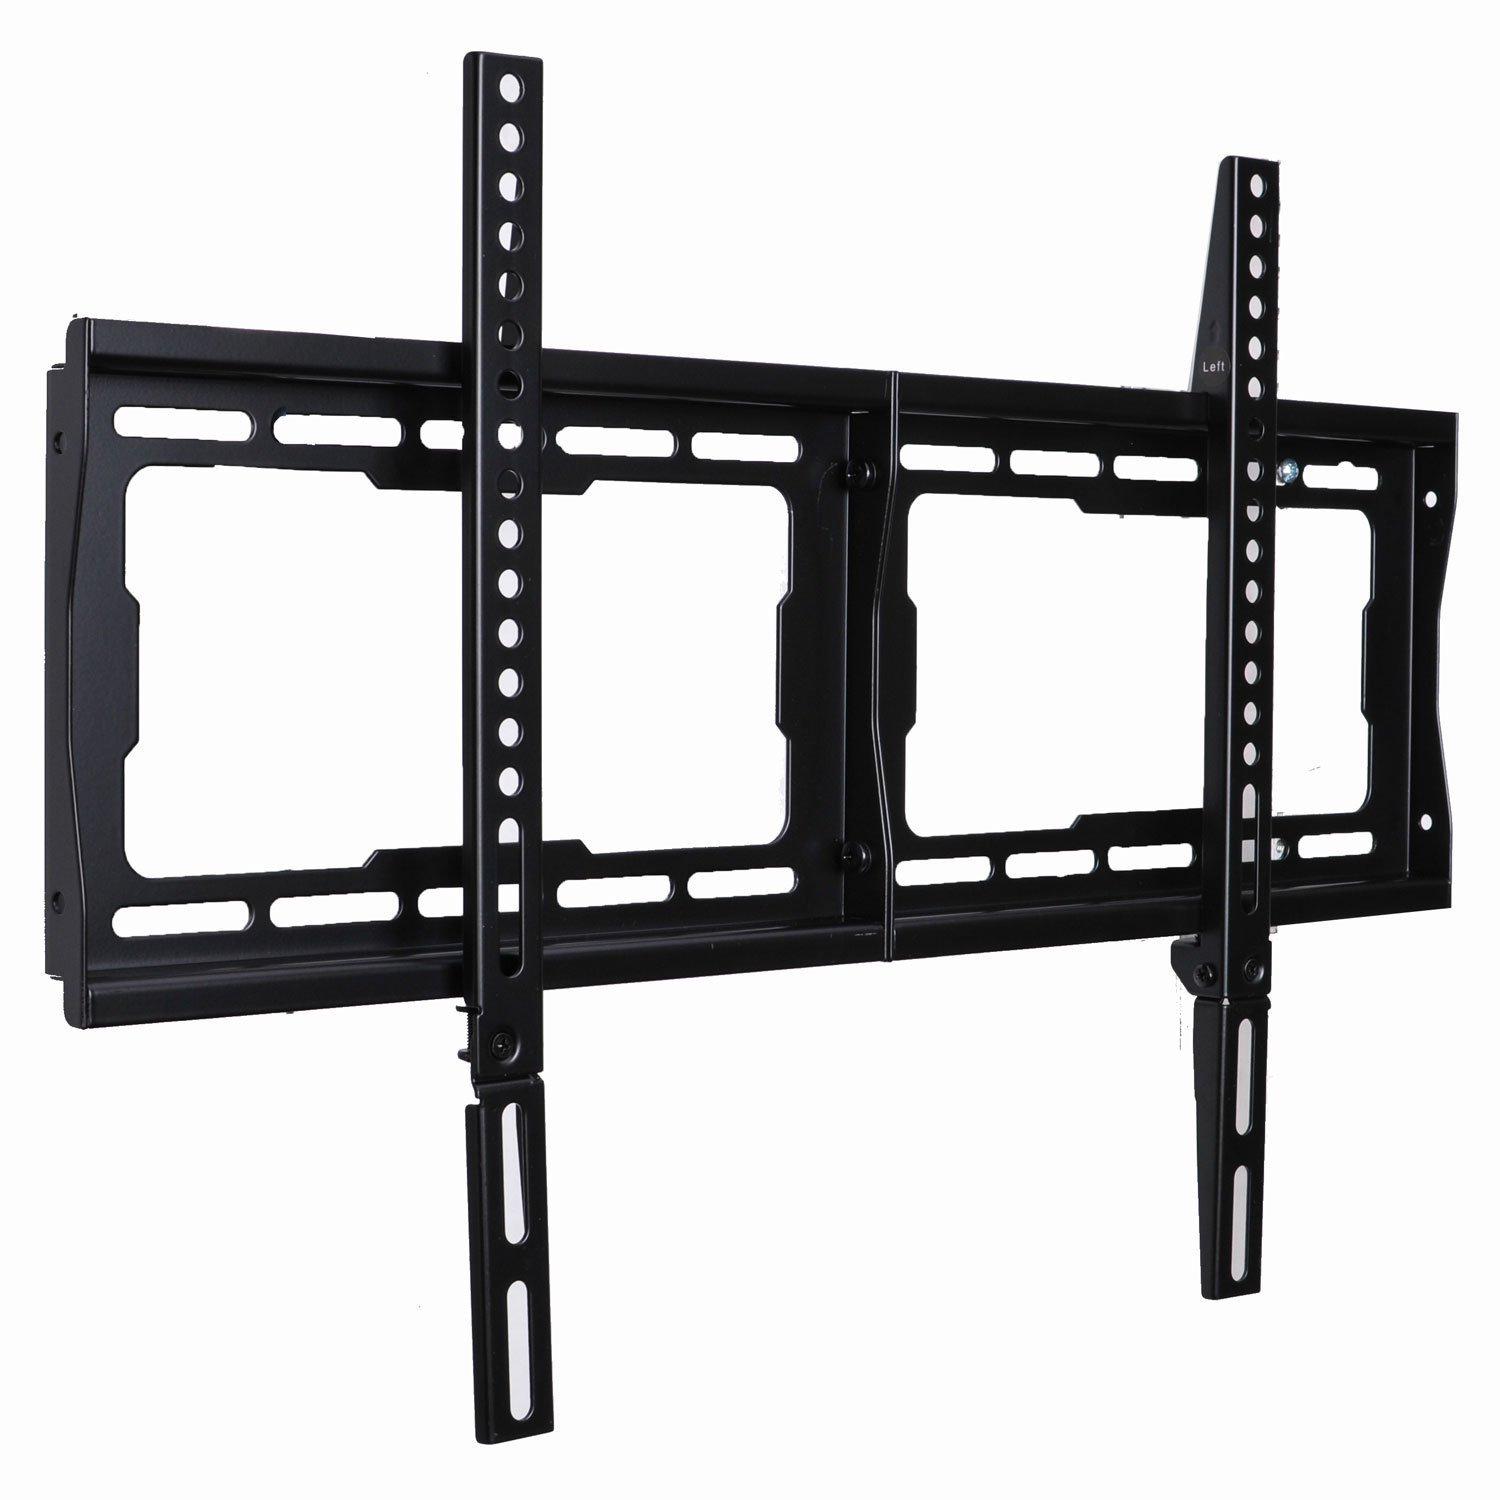 lg tv bracket. amazon.com: videosecu low profile tv wall mount bracket for most 32\ lg tv